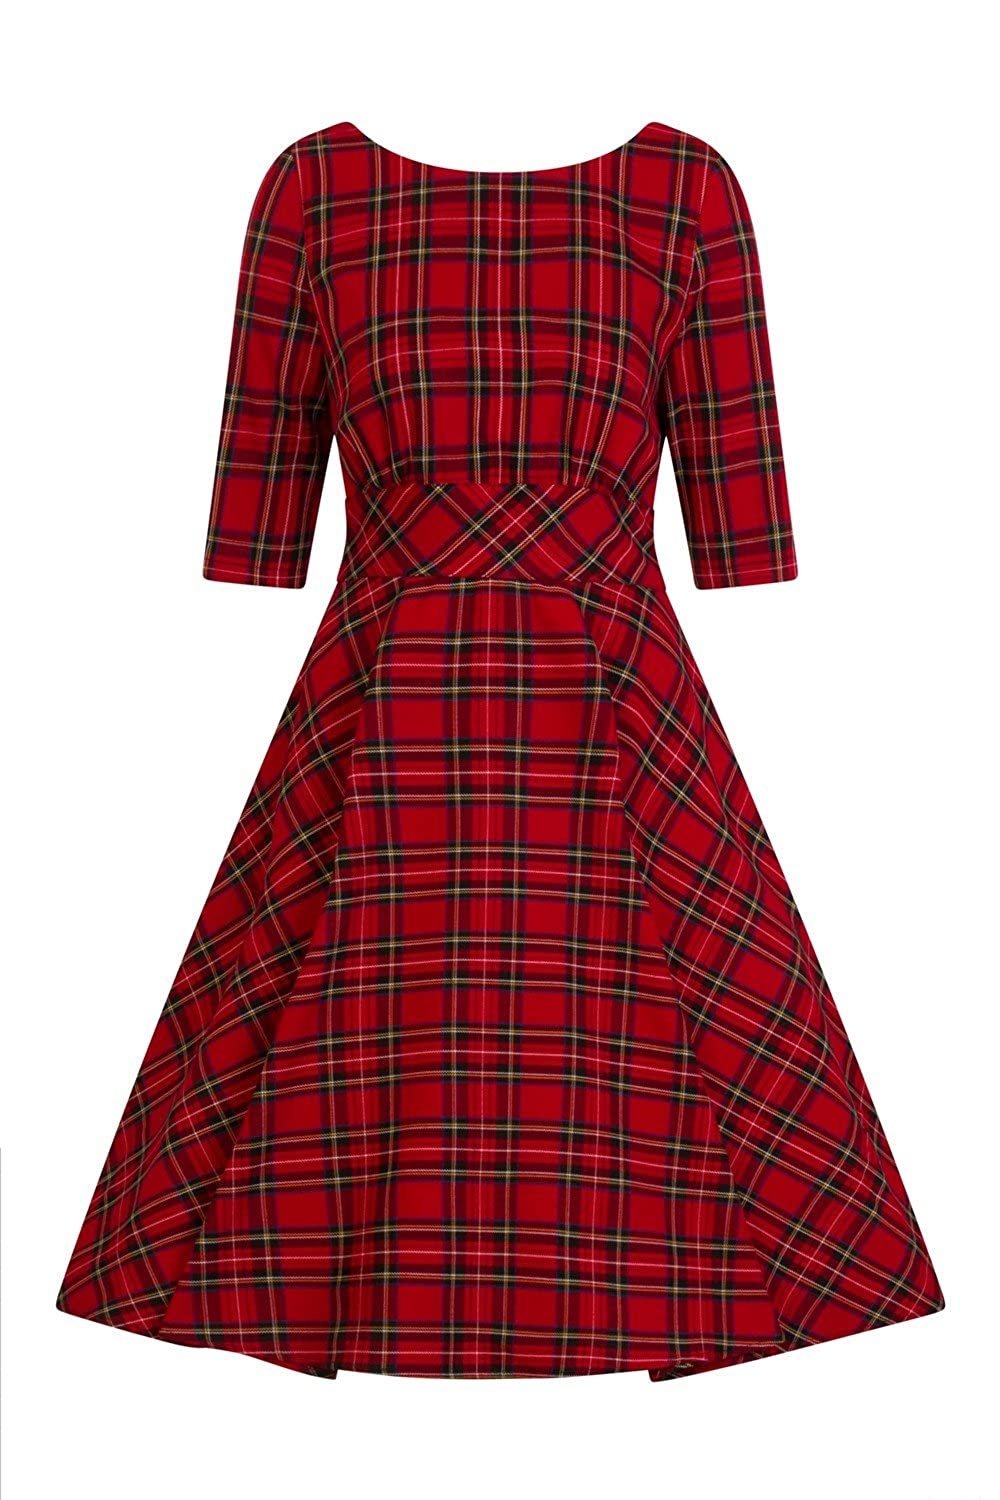 Swing Dance Clothing You Can Dance In Hell Bunny Irvine Tartan 1950s Vintage Retro Dress XS-4XL $72.99 AT vintagedancer.com